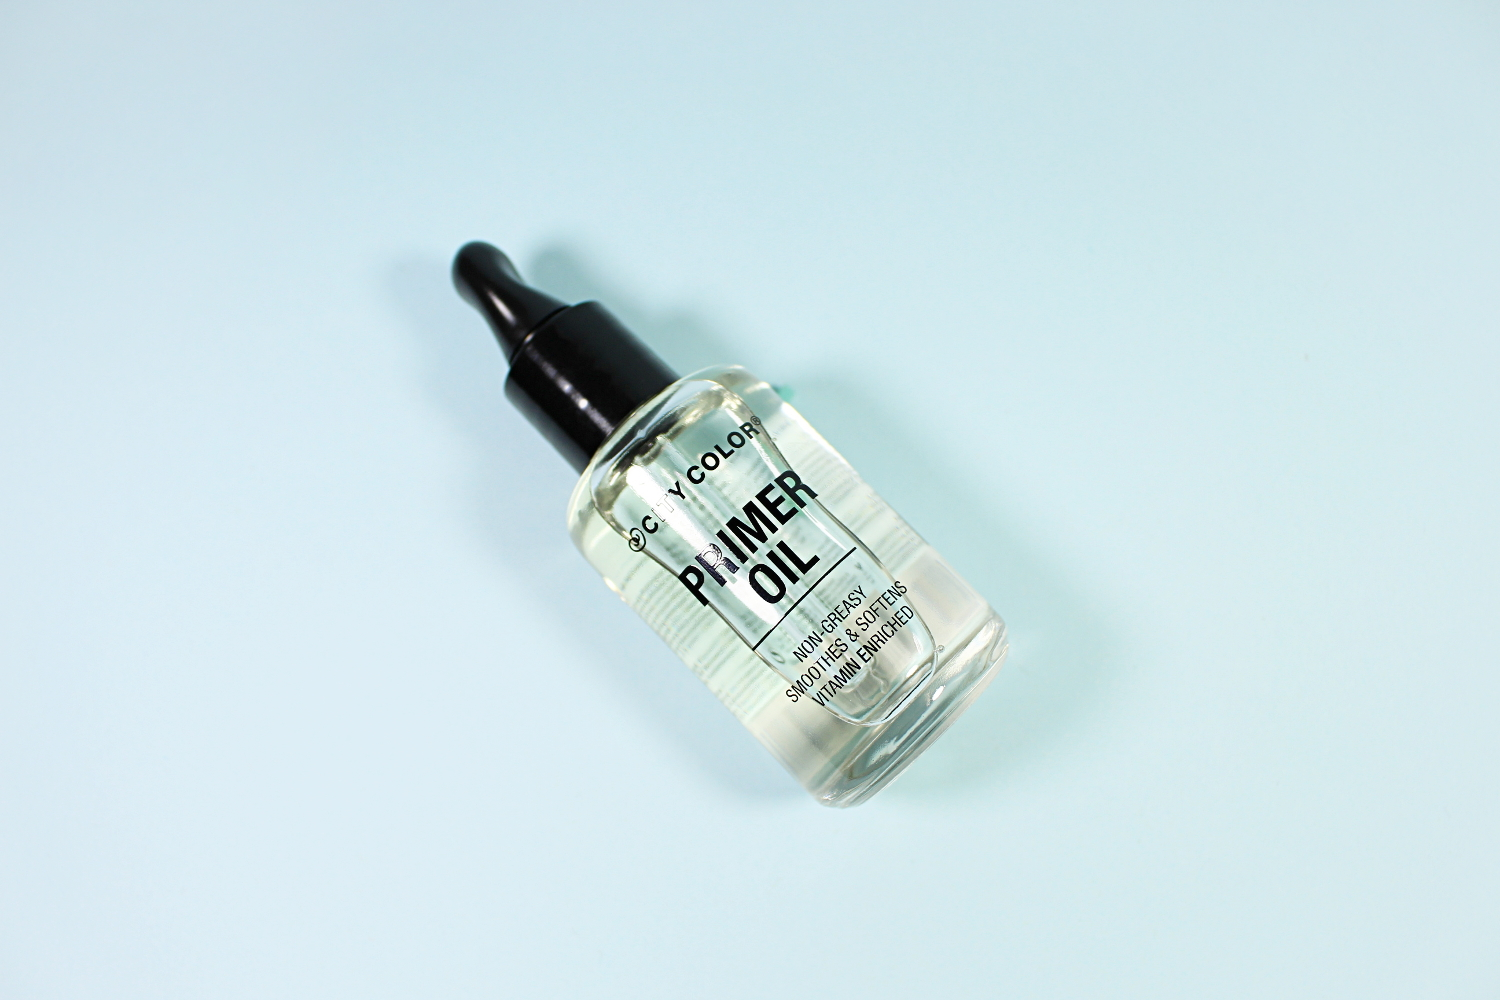 City Color Primer Oil liz breygel makeup cosmetics review before after demo test drive affordable budget friendly brand